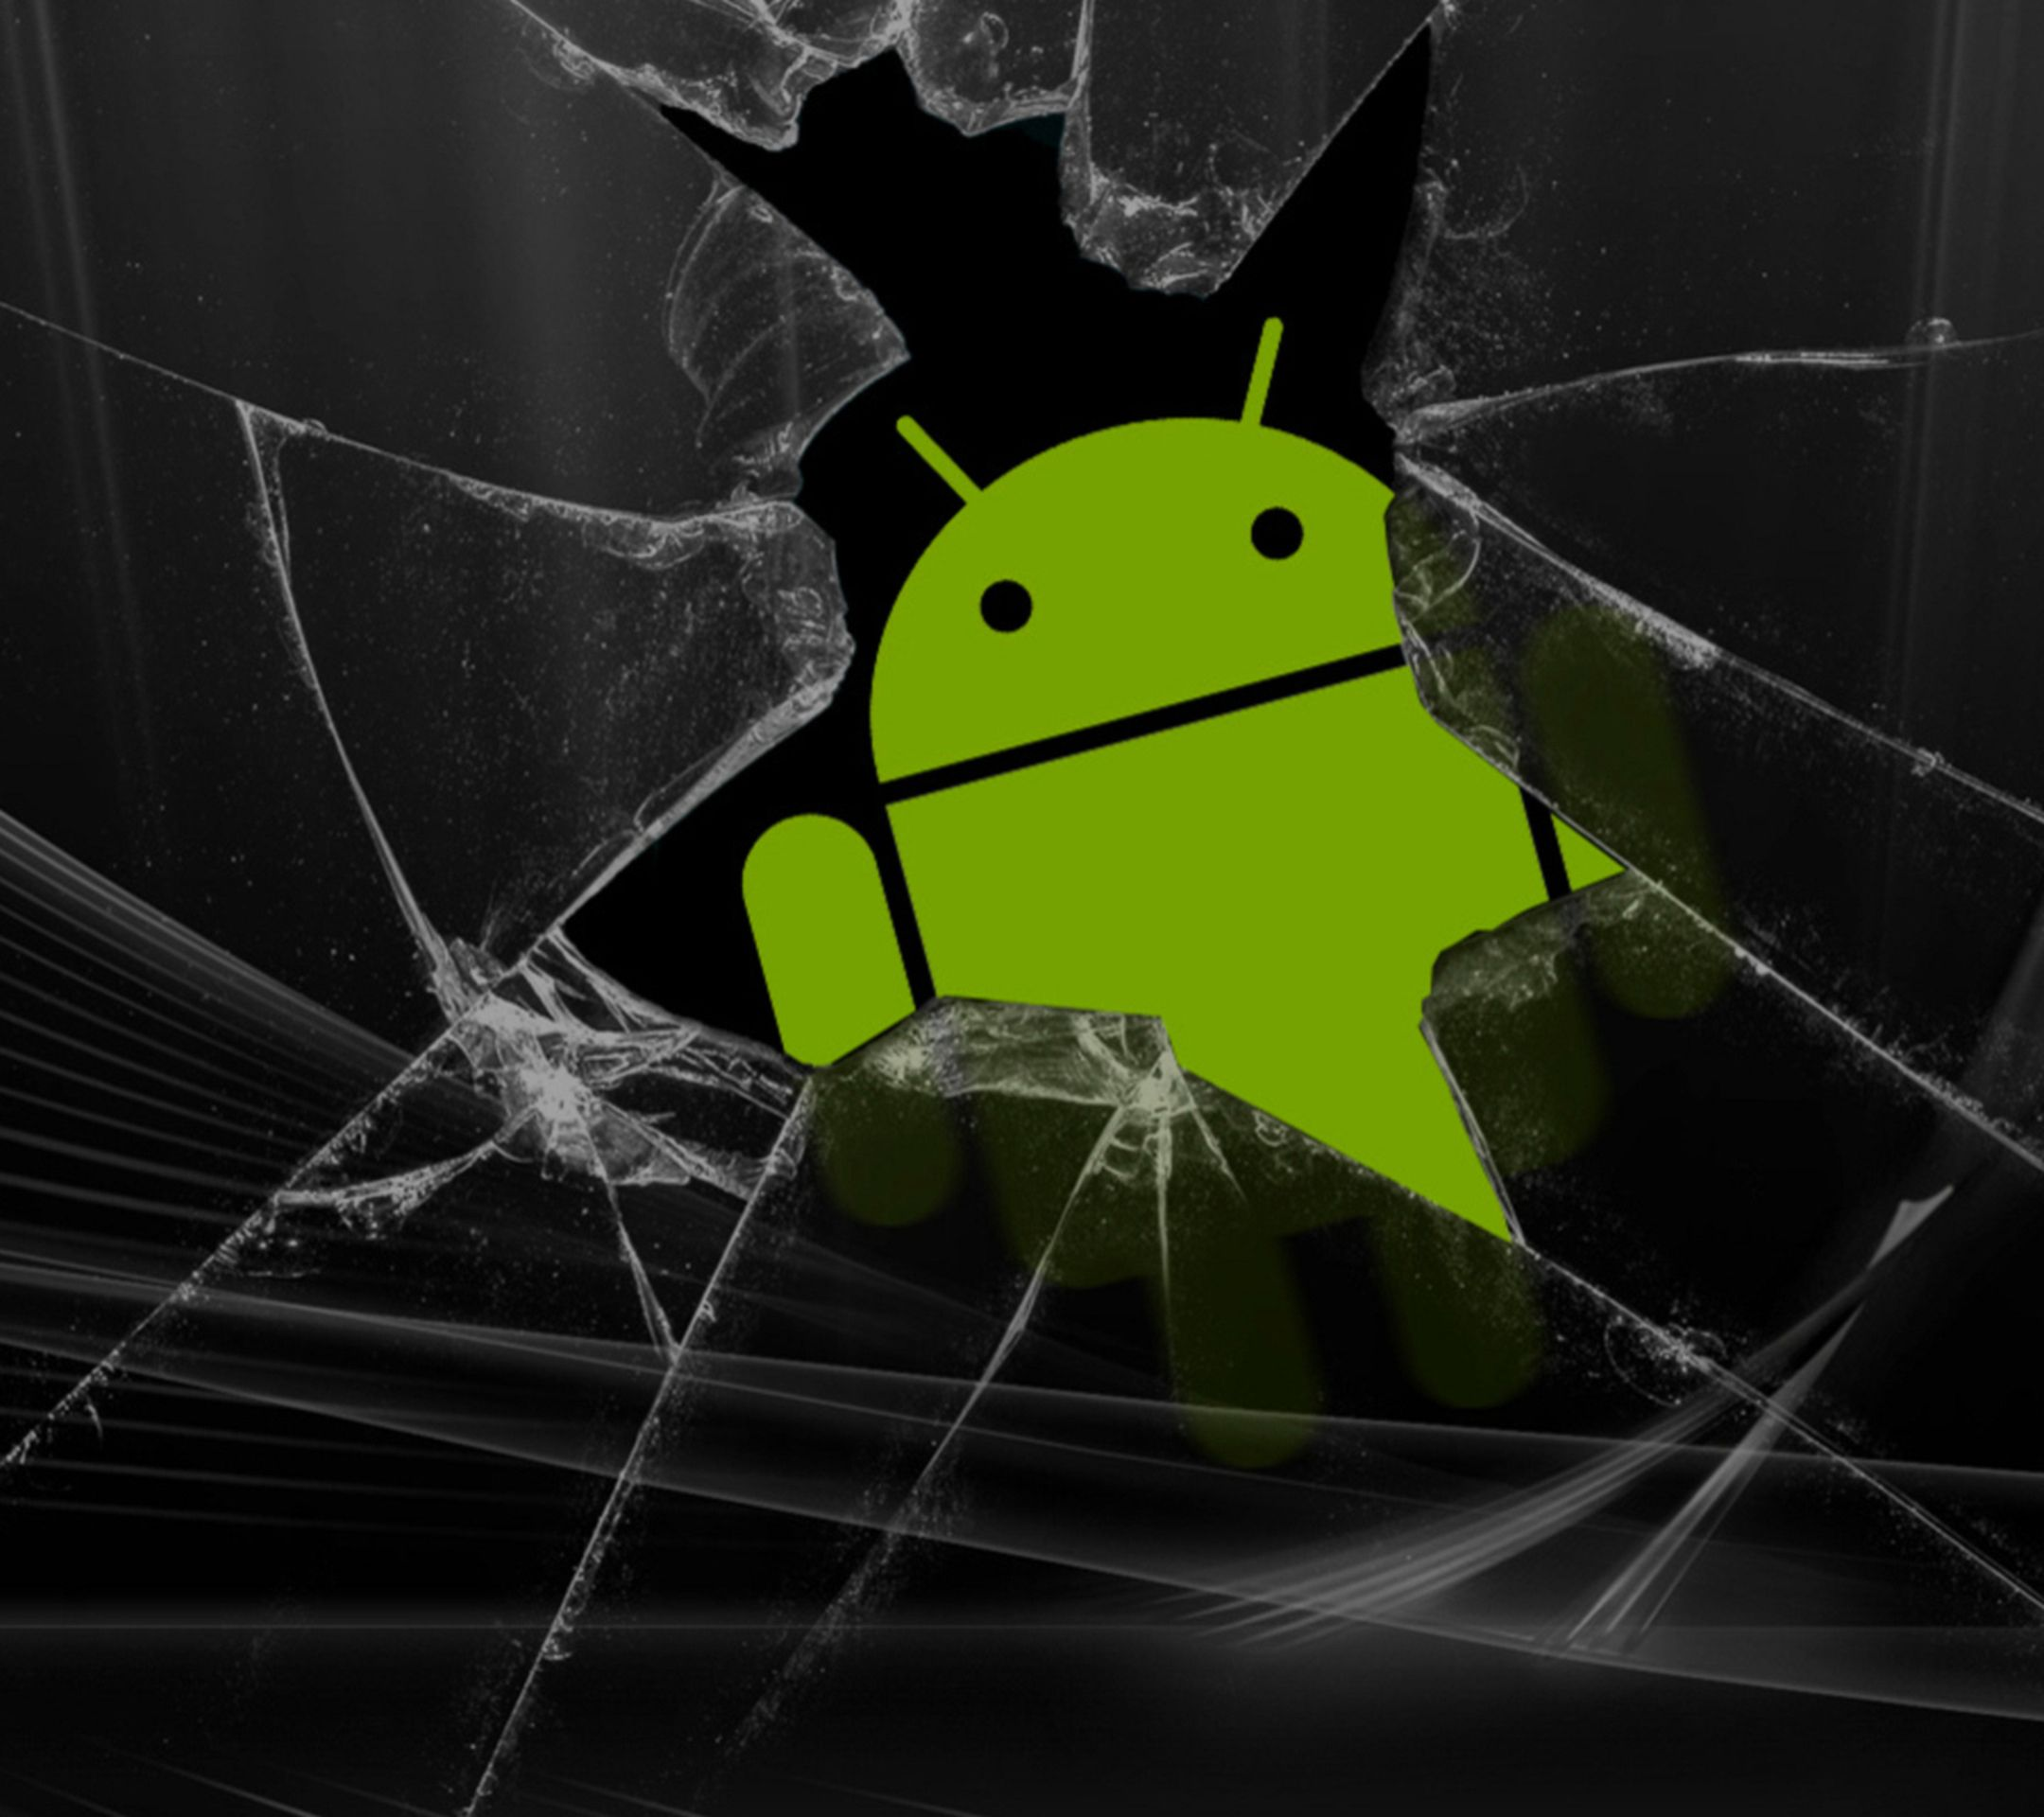 GalaxyS5, Wallpaper, Android Cool wallpapers for